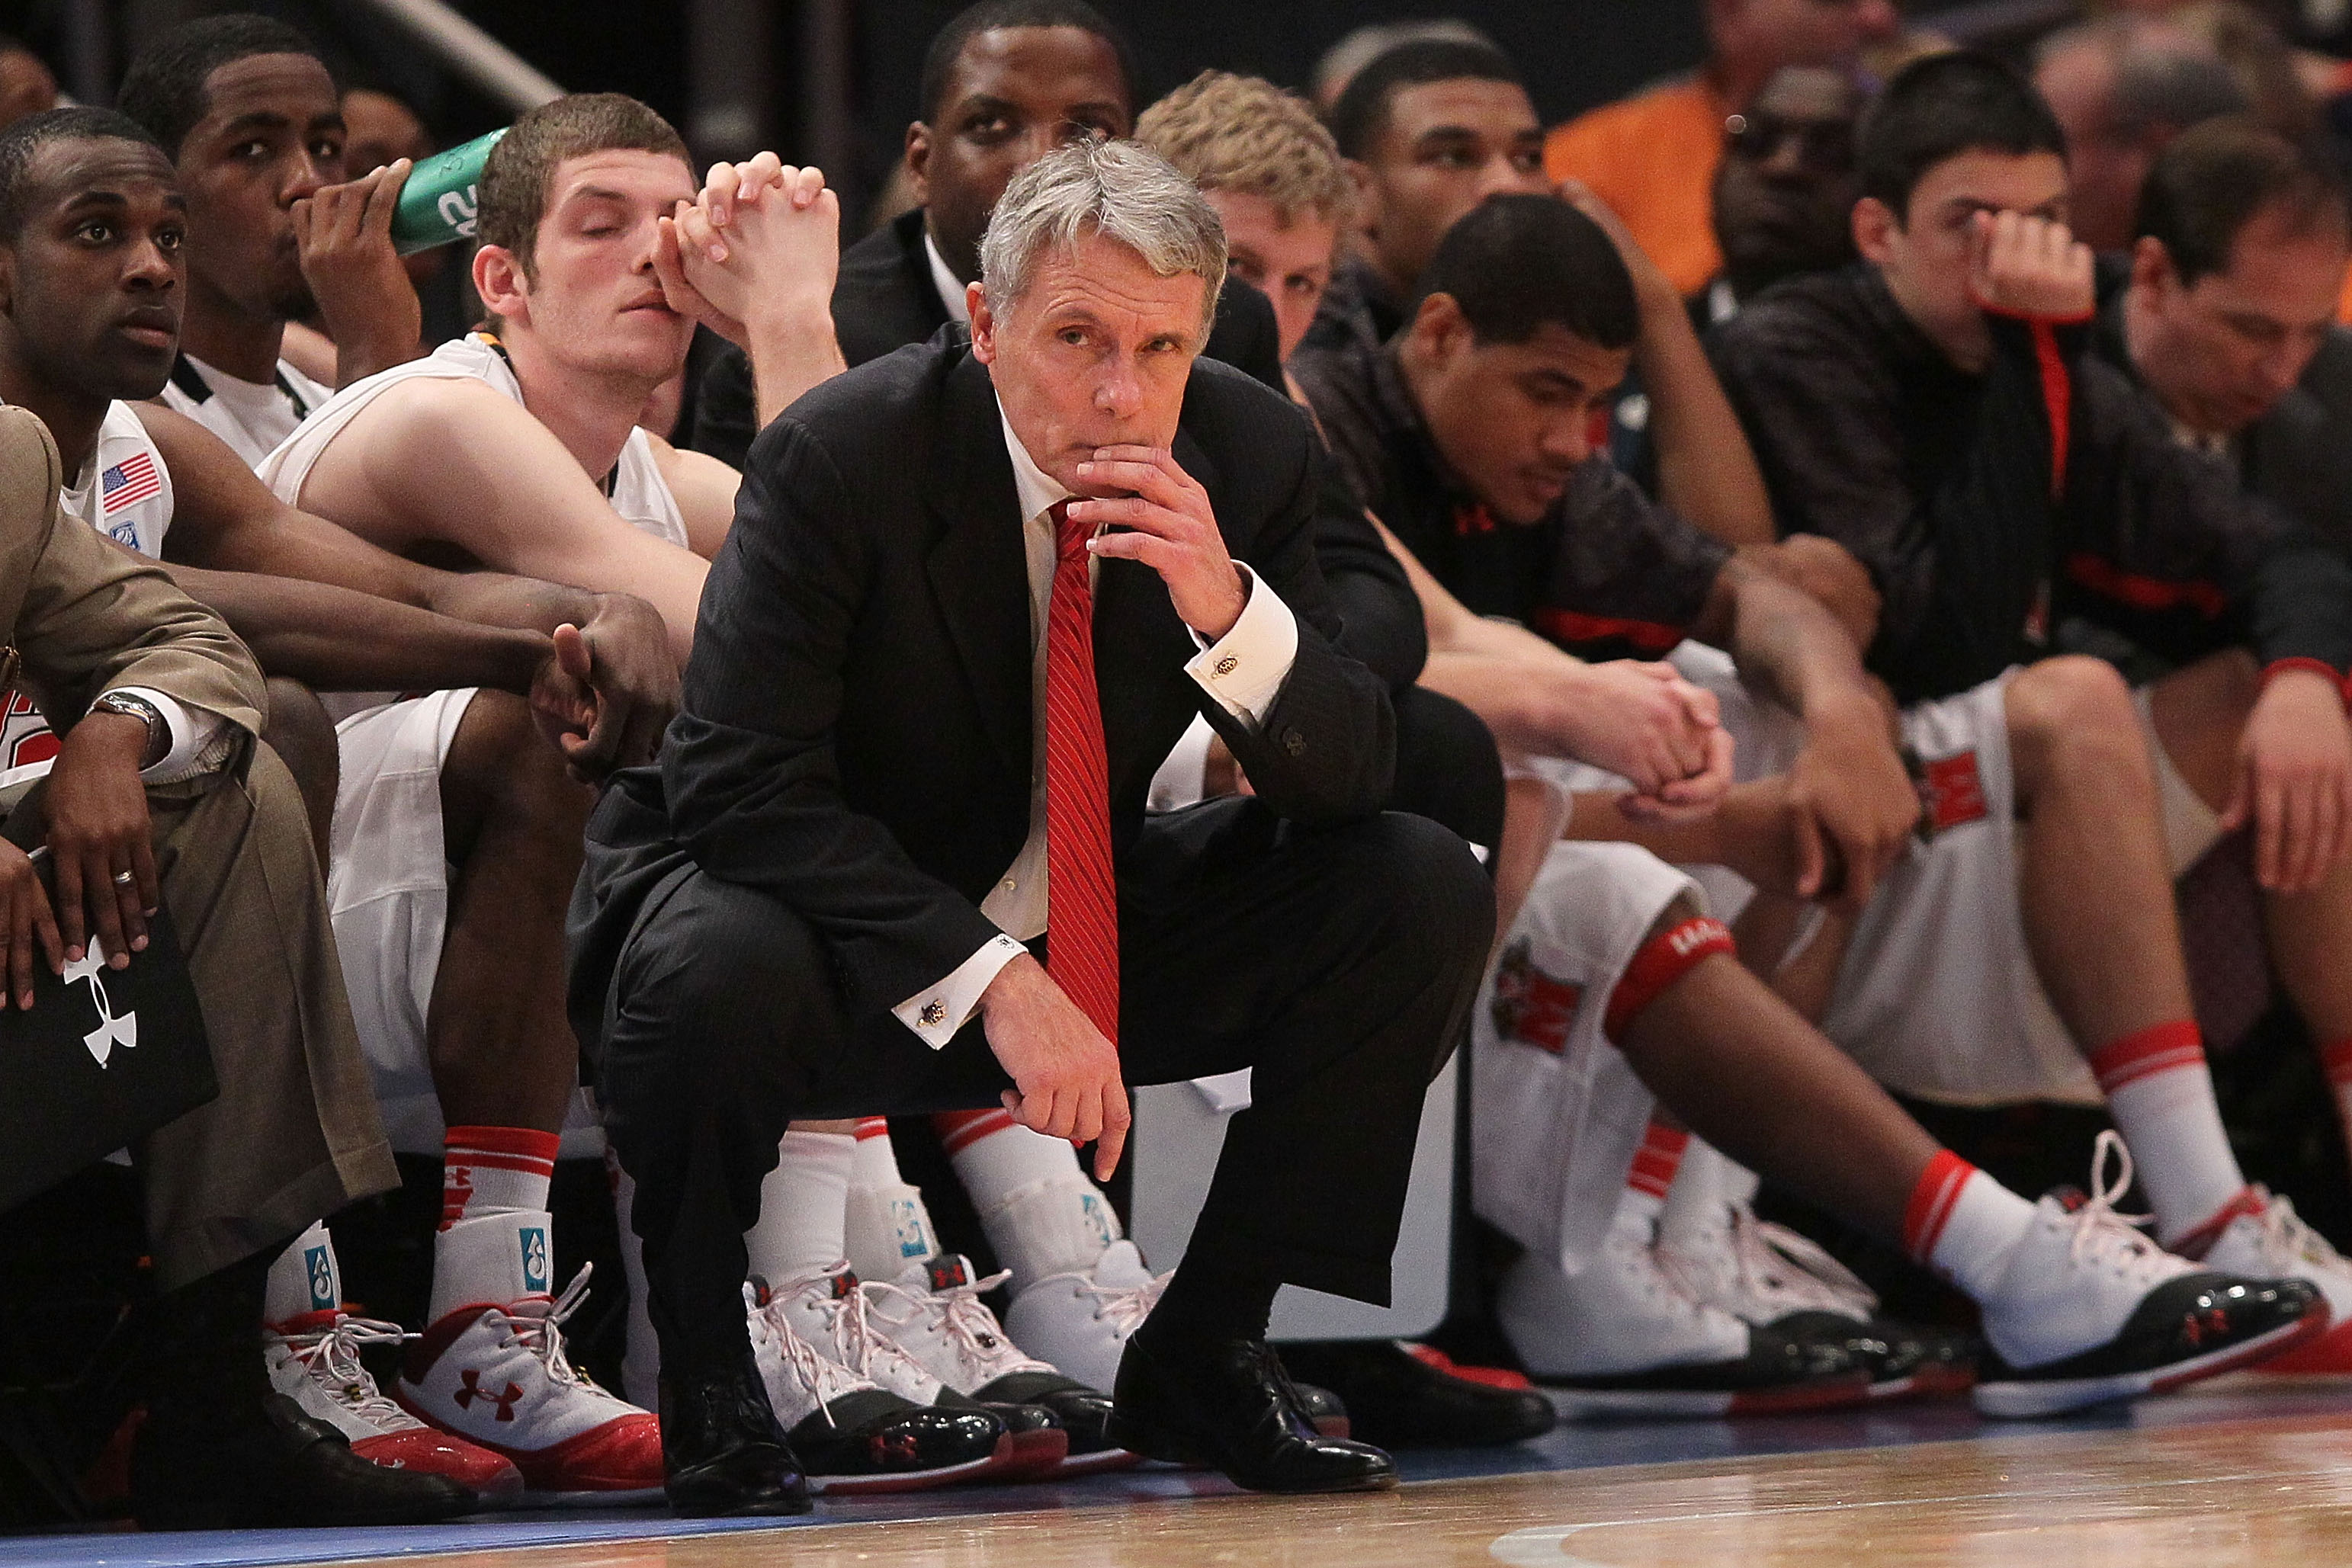 NEW YORK - NOVEMBER 18:  Head coach Gary Williams of the Maryland Terrapins watches on in the closing minute against the Pittsburgh Panthers during the 2k Sports Classic at Madison Square Garden on November 18, 2010 in New York, New York.  (Photo by Chris